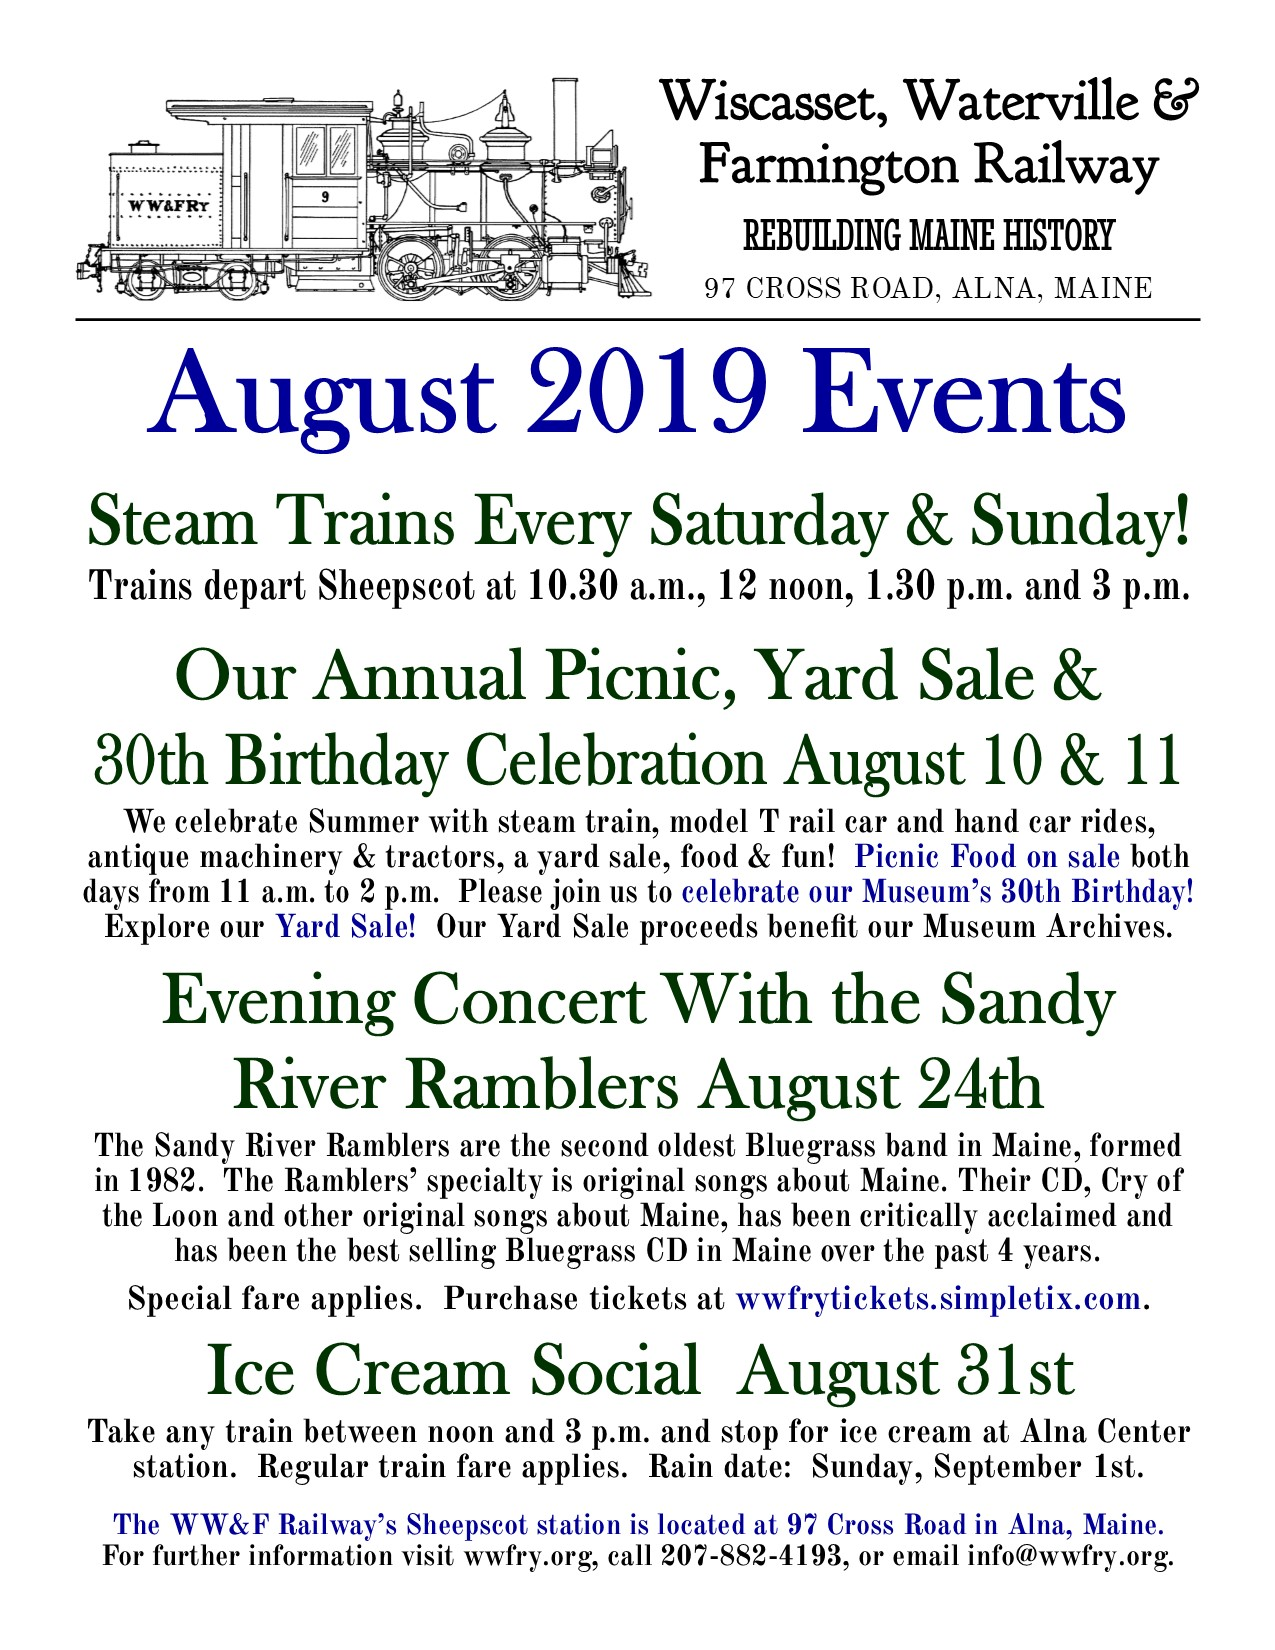 Weekend Steam Trains & Our August Events!